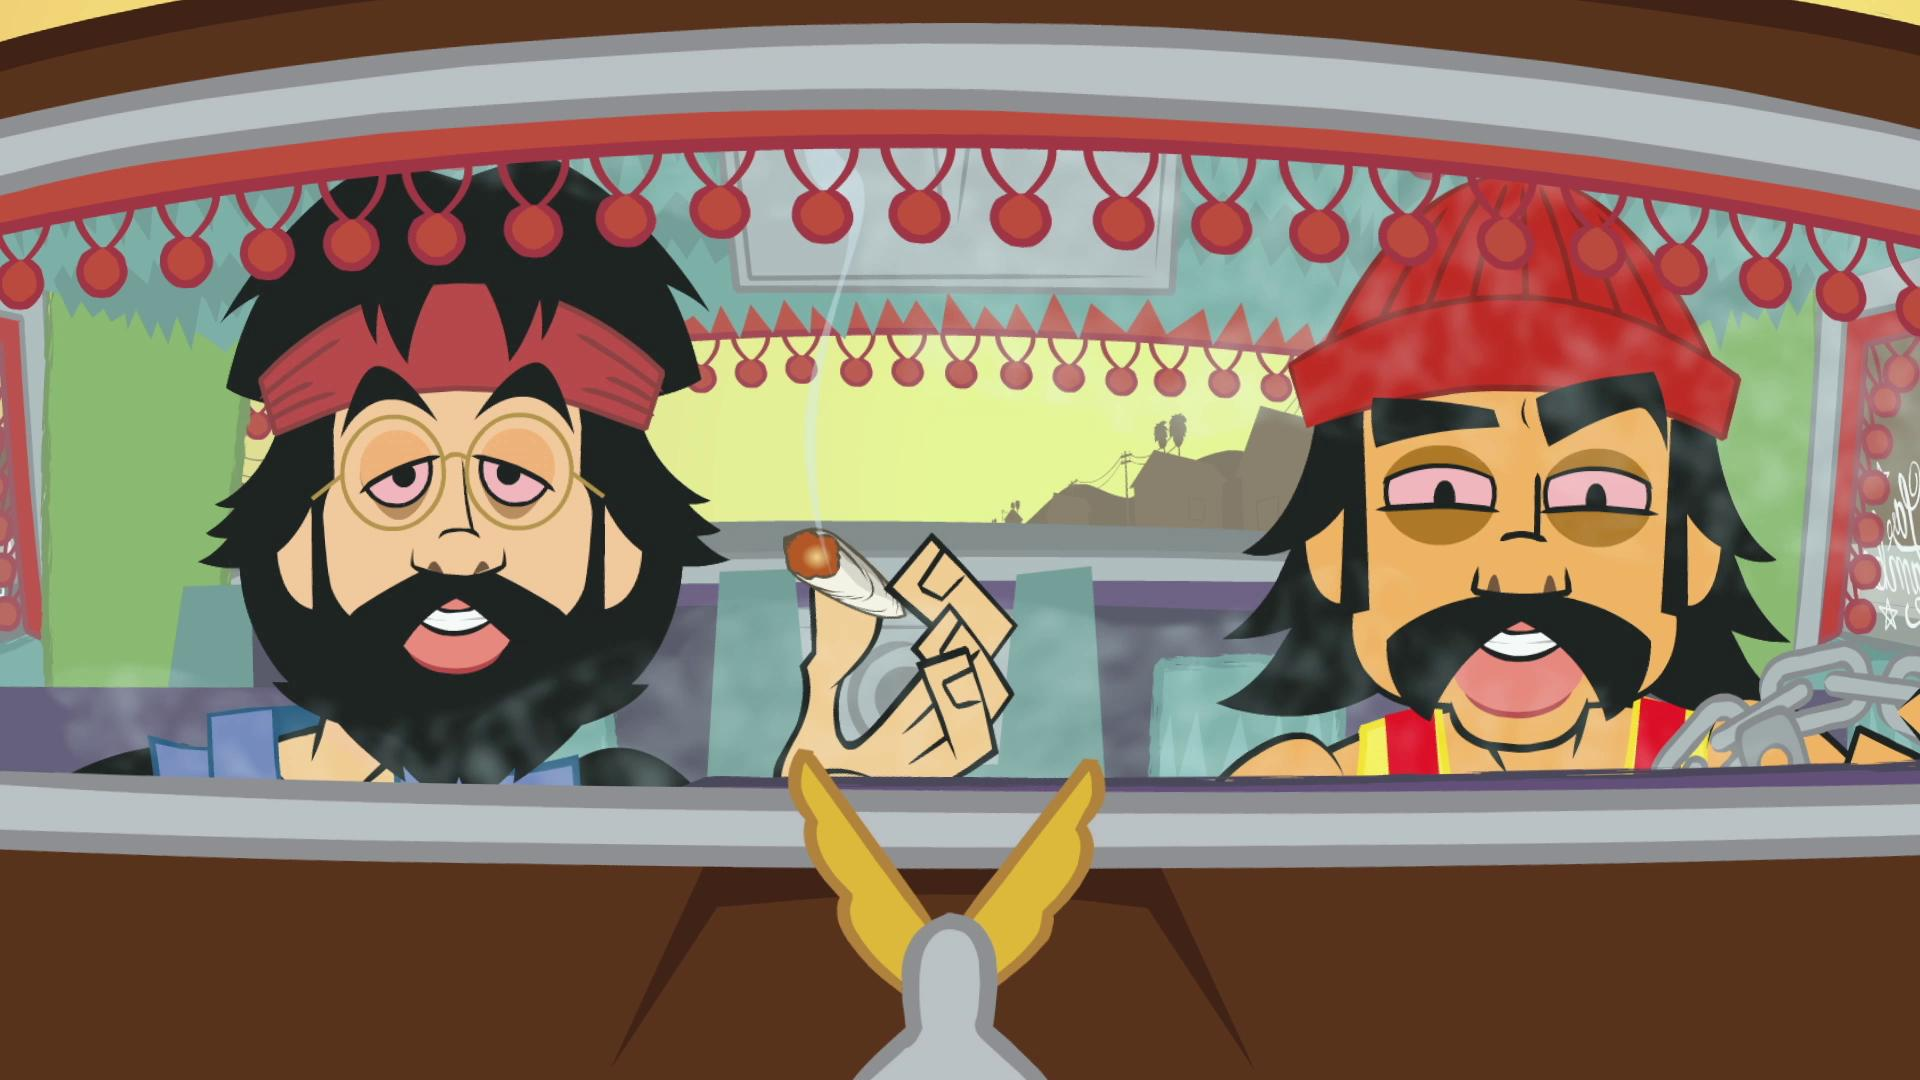 CHEECH-AND-CHONG-UP-IN-SMOKE-comedy-humor-marijuana-weed-tw-1920x1080-Wal-wallpaper-wpc9003446